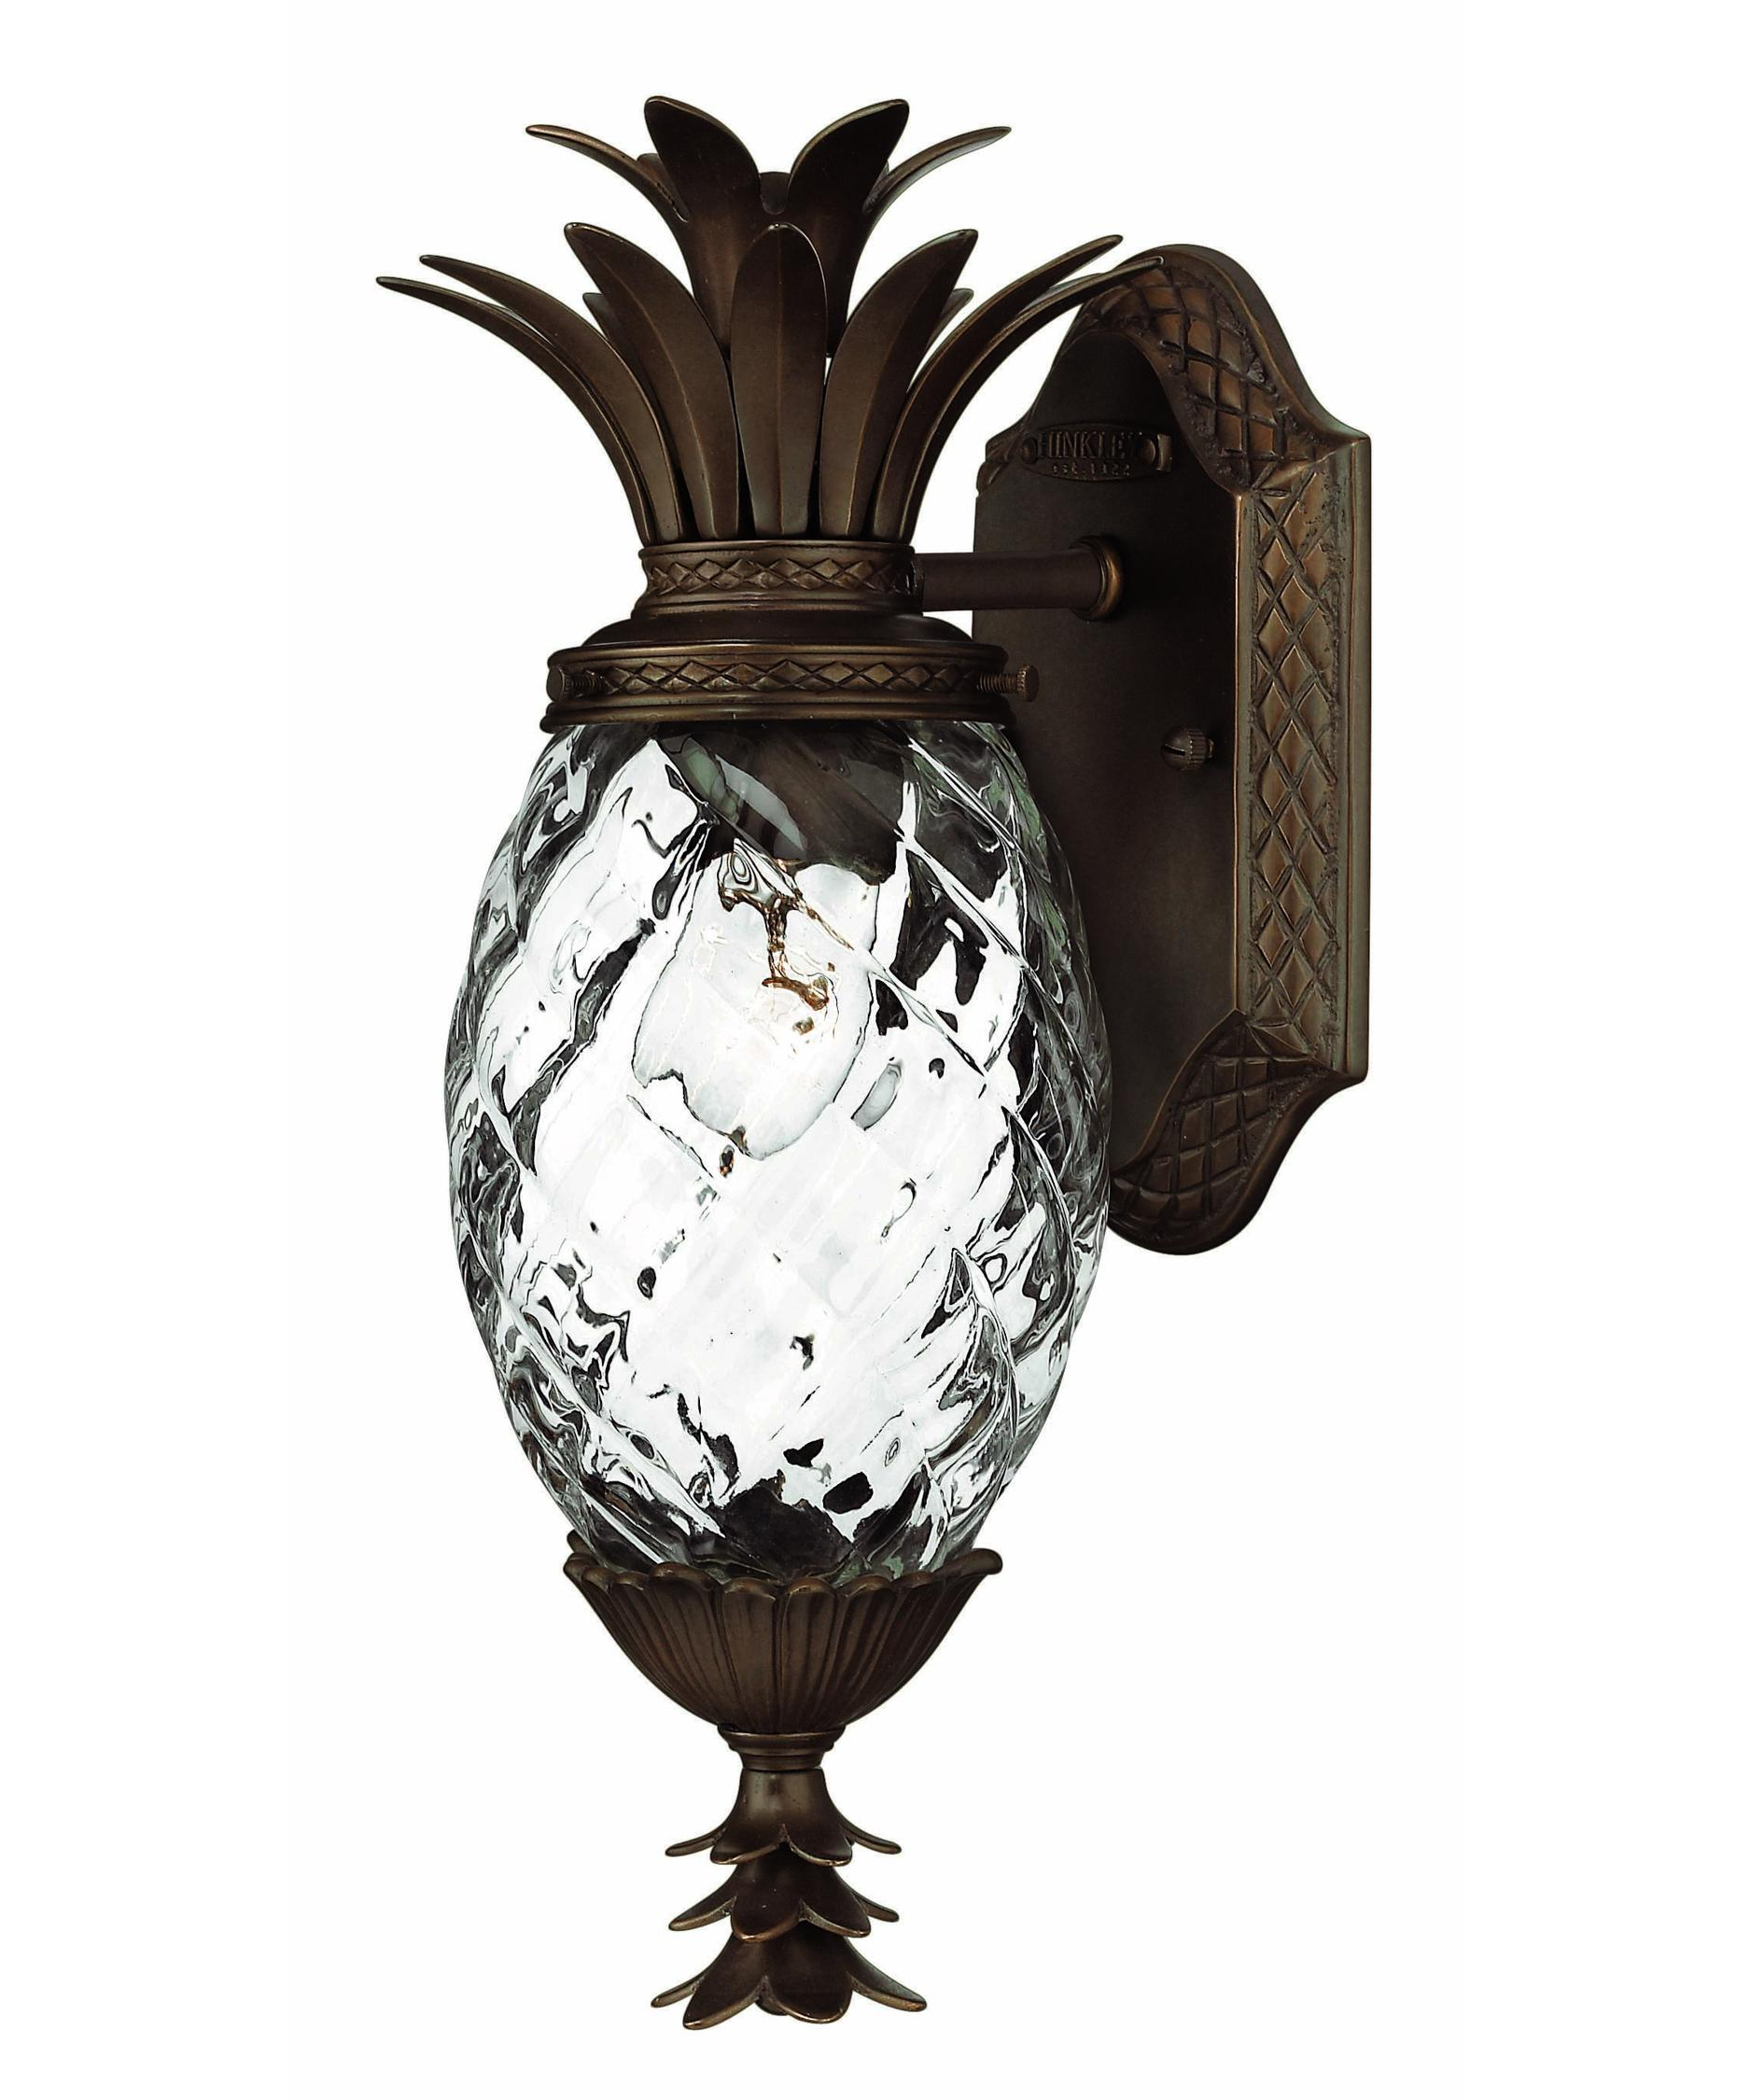 Hinkley Lighting 2226 Plantation Exterior 1 Light Outdoor Wall Light Capito Ideas